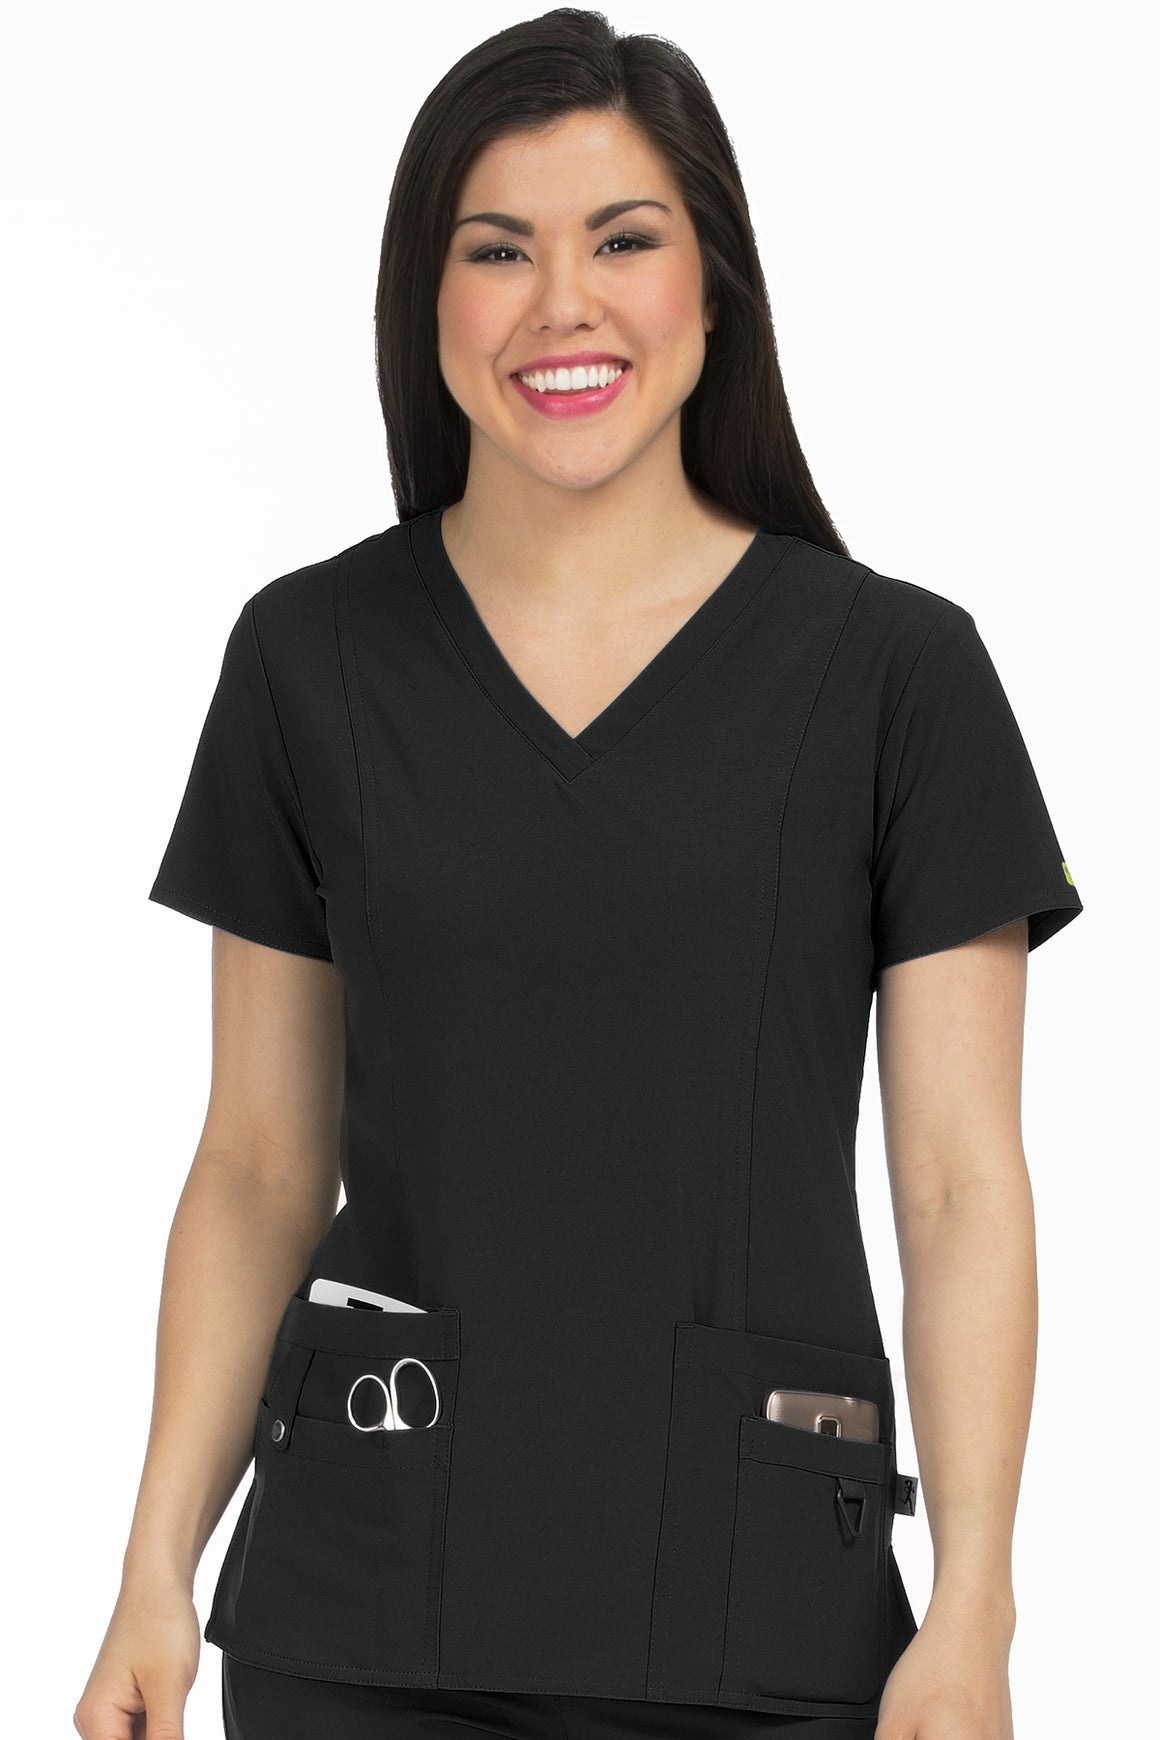 Medcouture In Motion Scrub Top - Black 8408